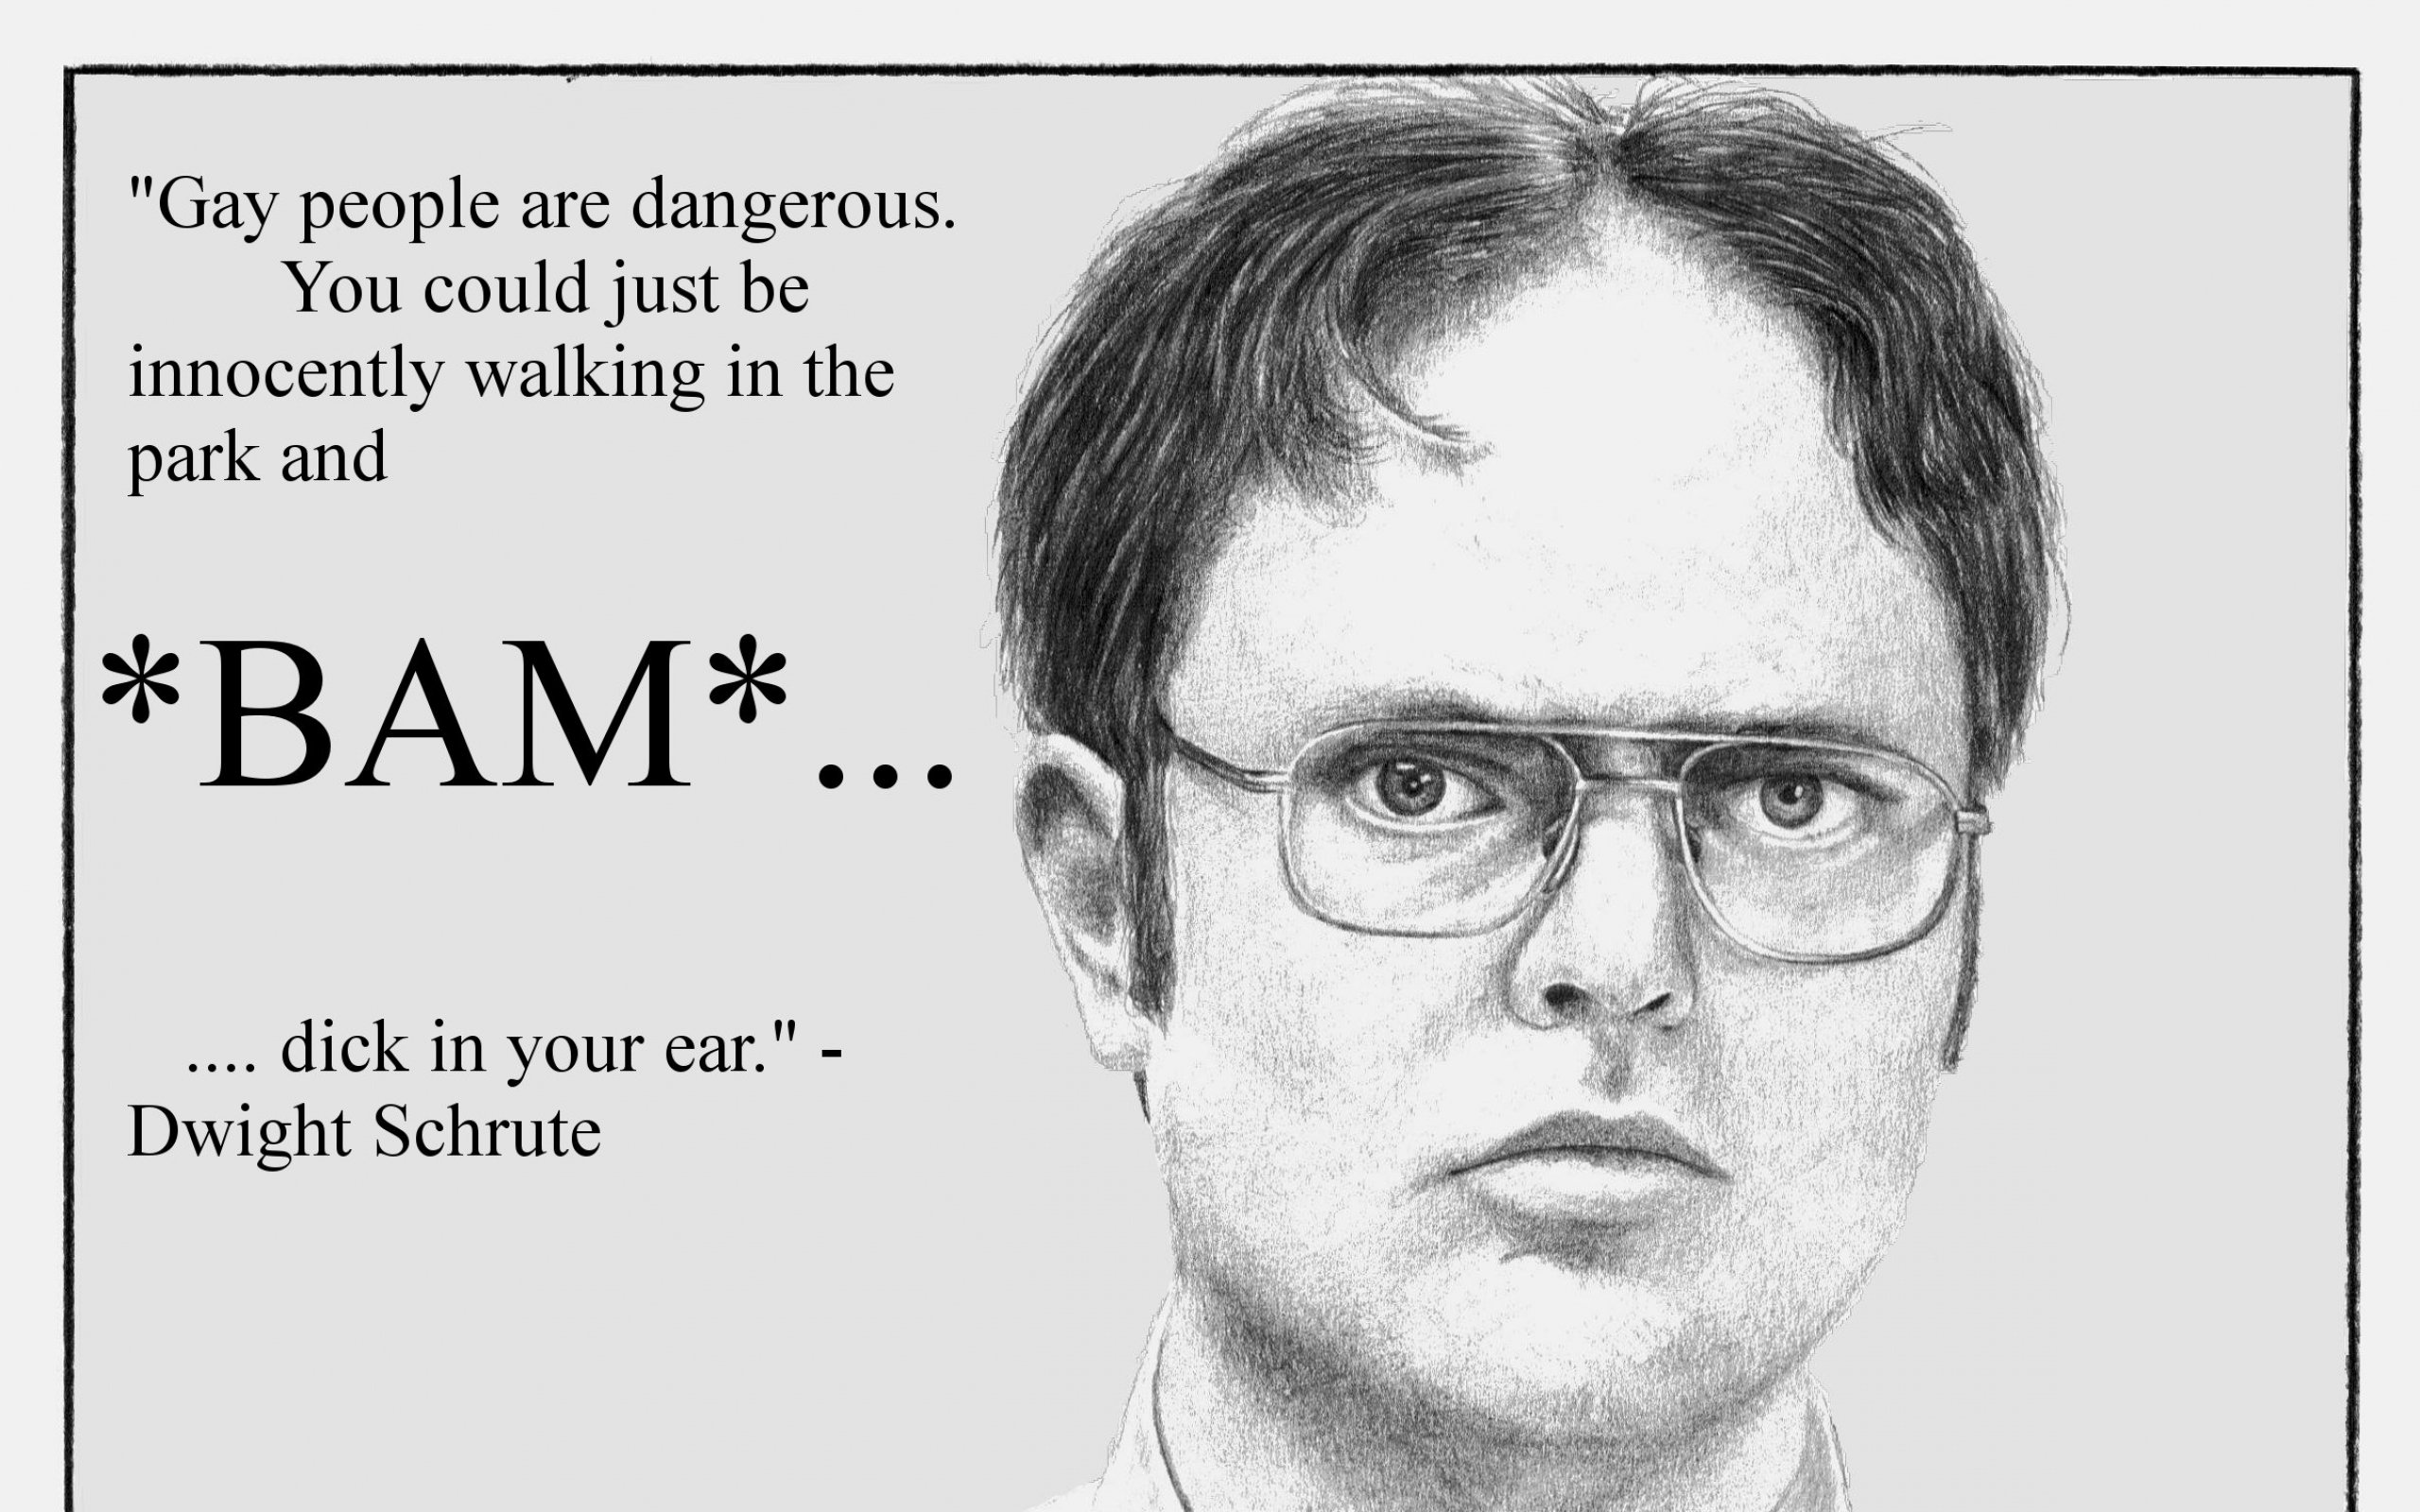 dwight schrute quotes fact bears quotesgram